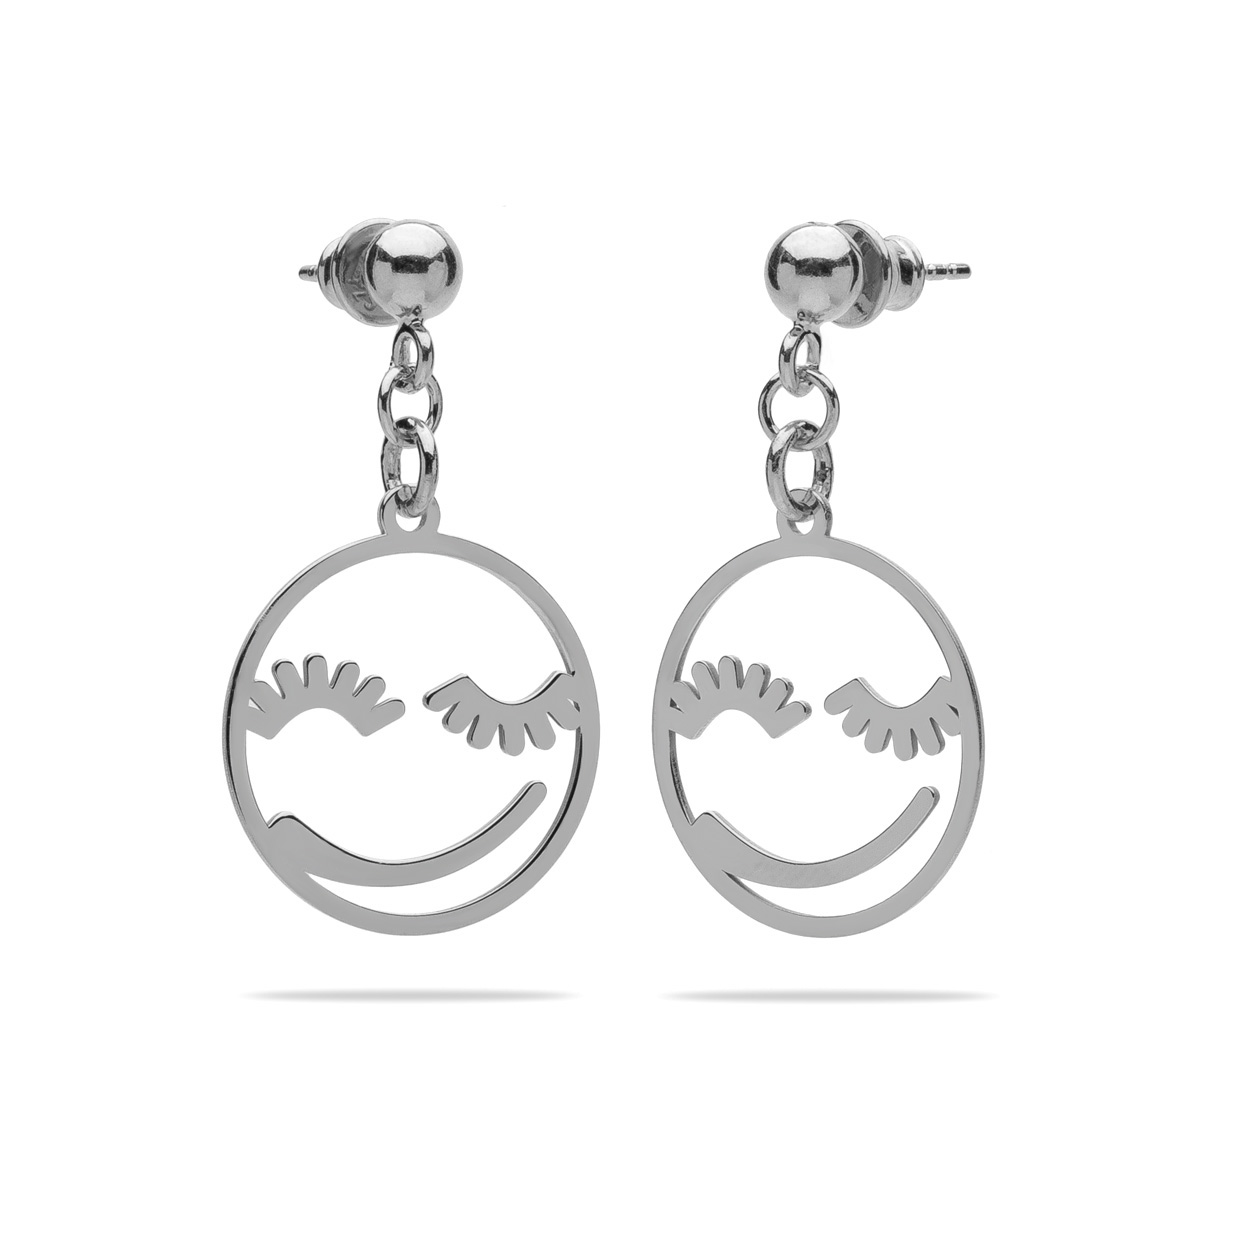 SILVER FACE EARRINGS 925